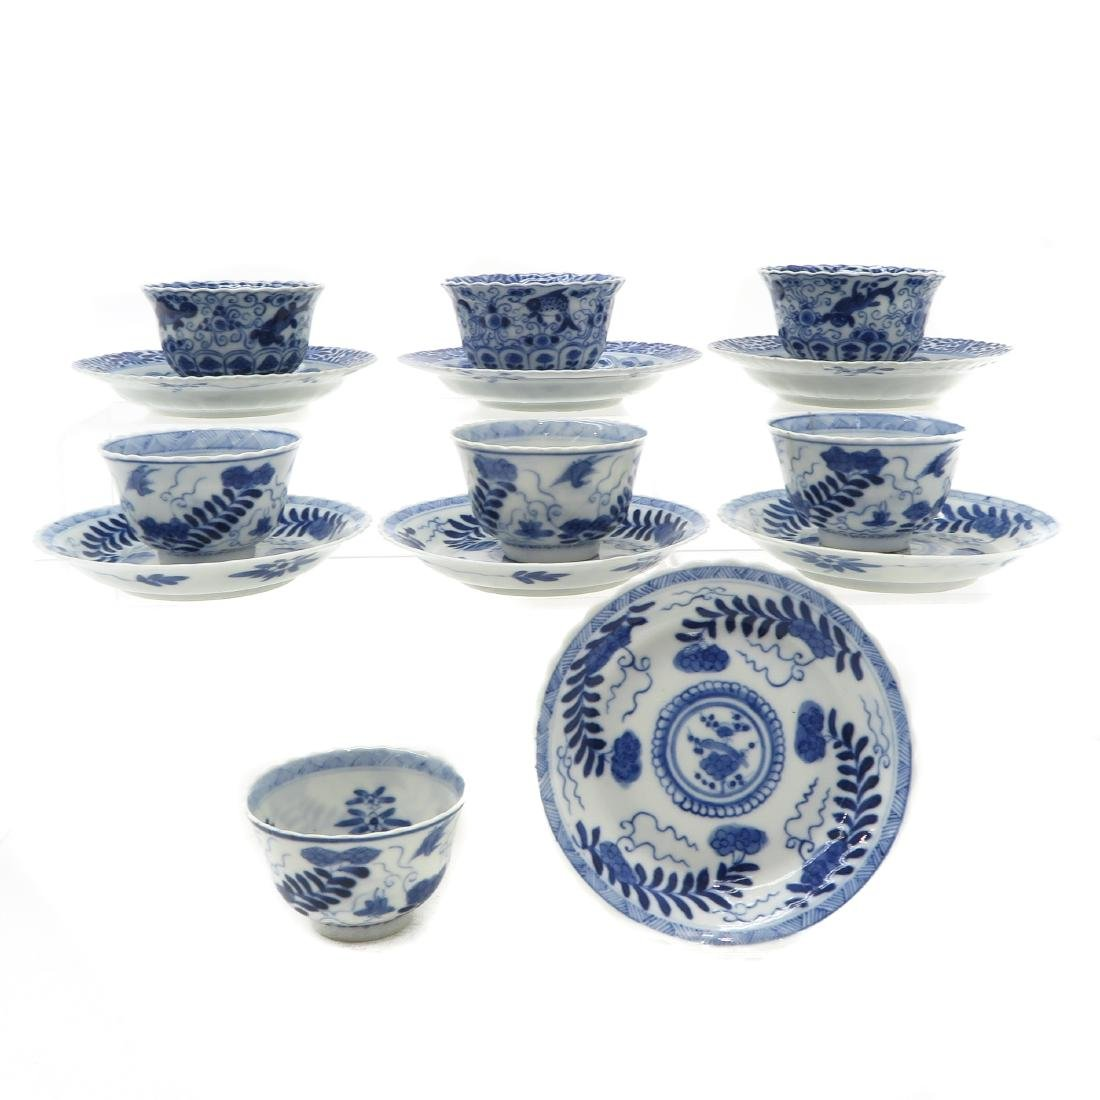 Diverse Lot of Cups and Saucers